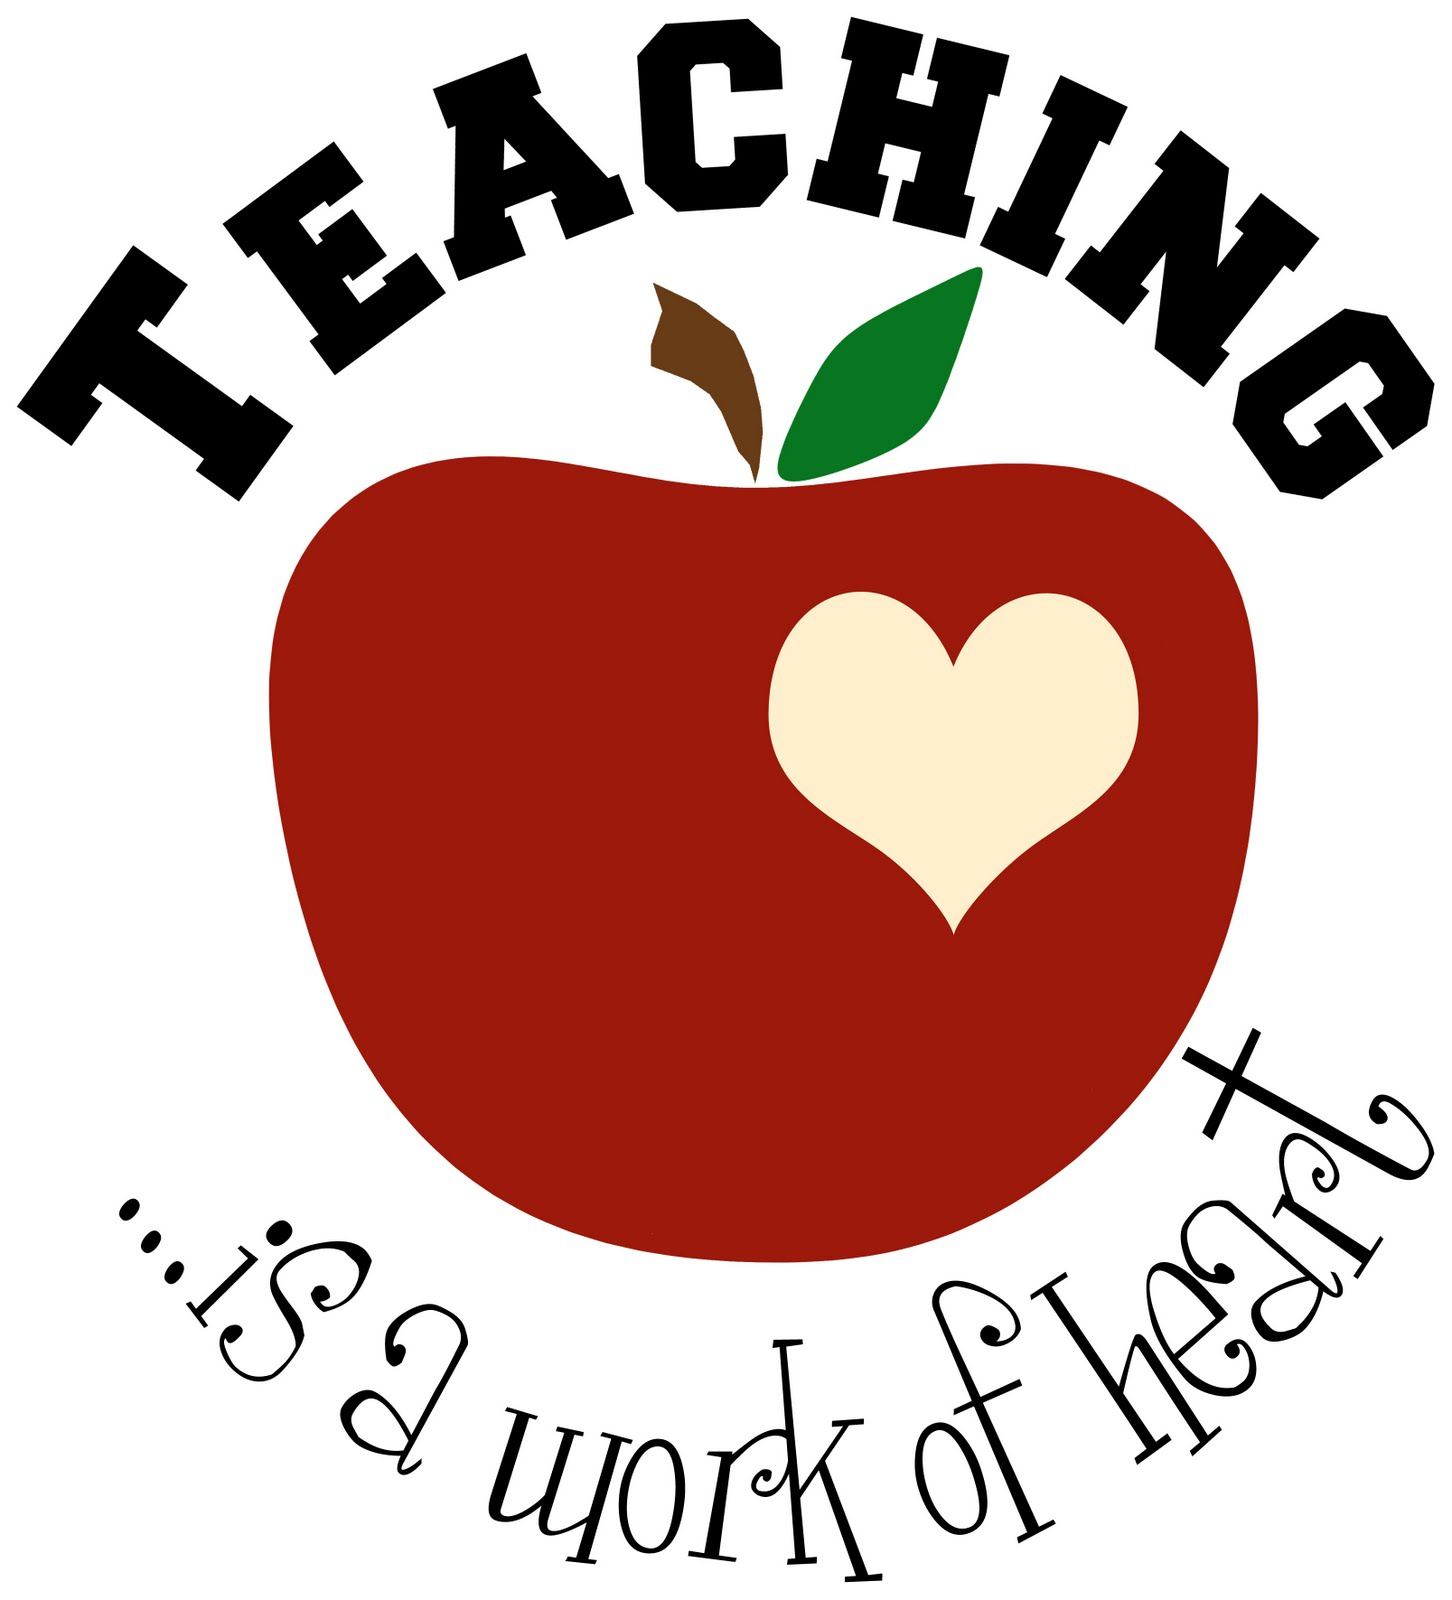 Affective Teaching: A Lesson Learned.